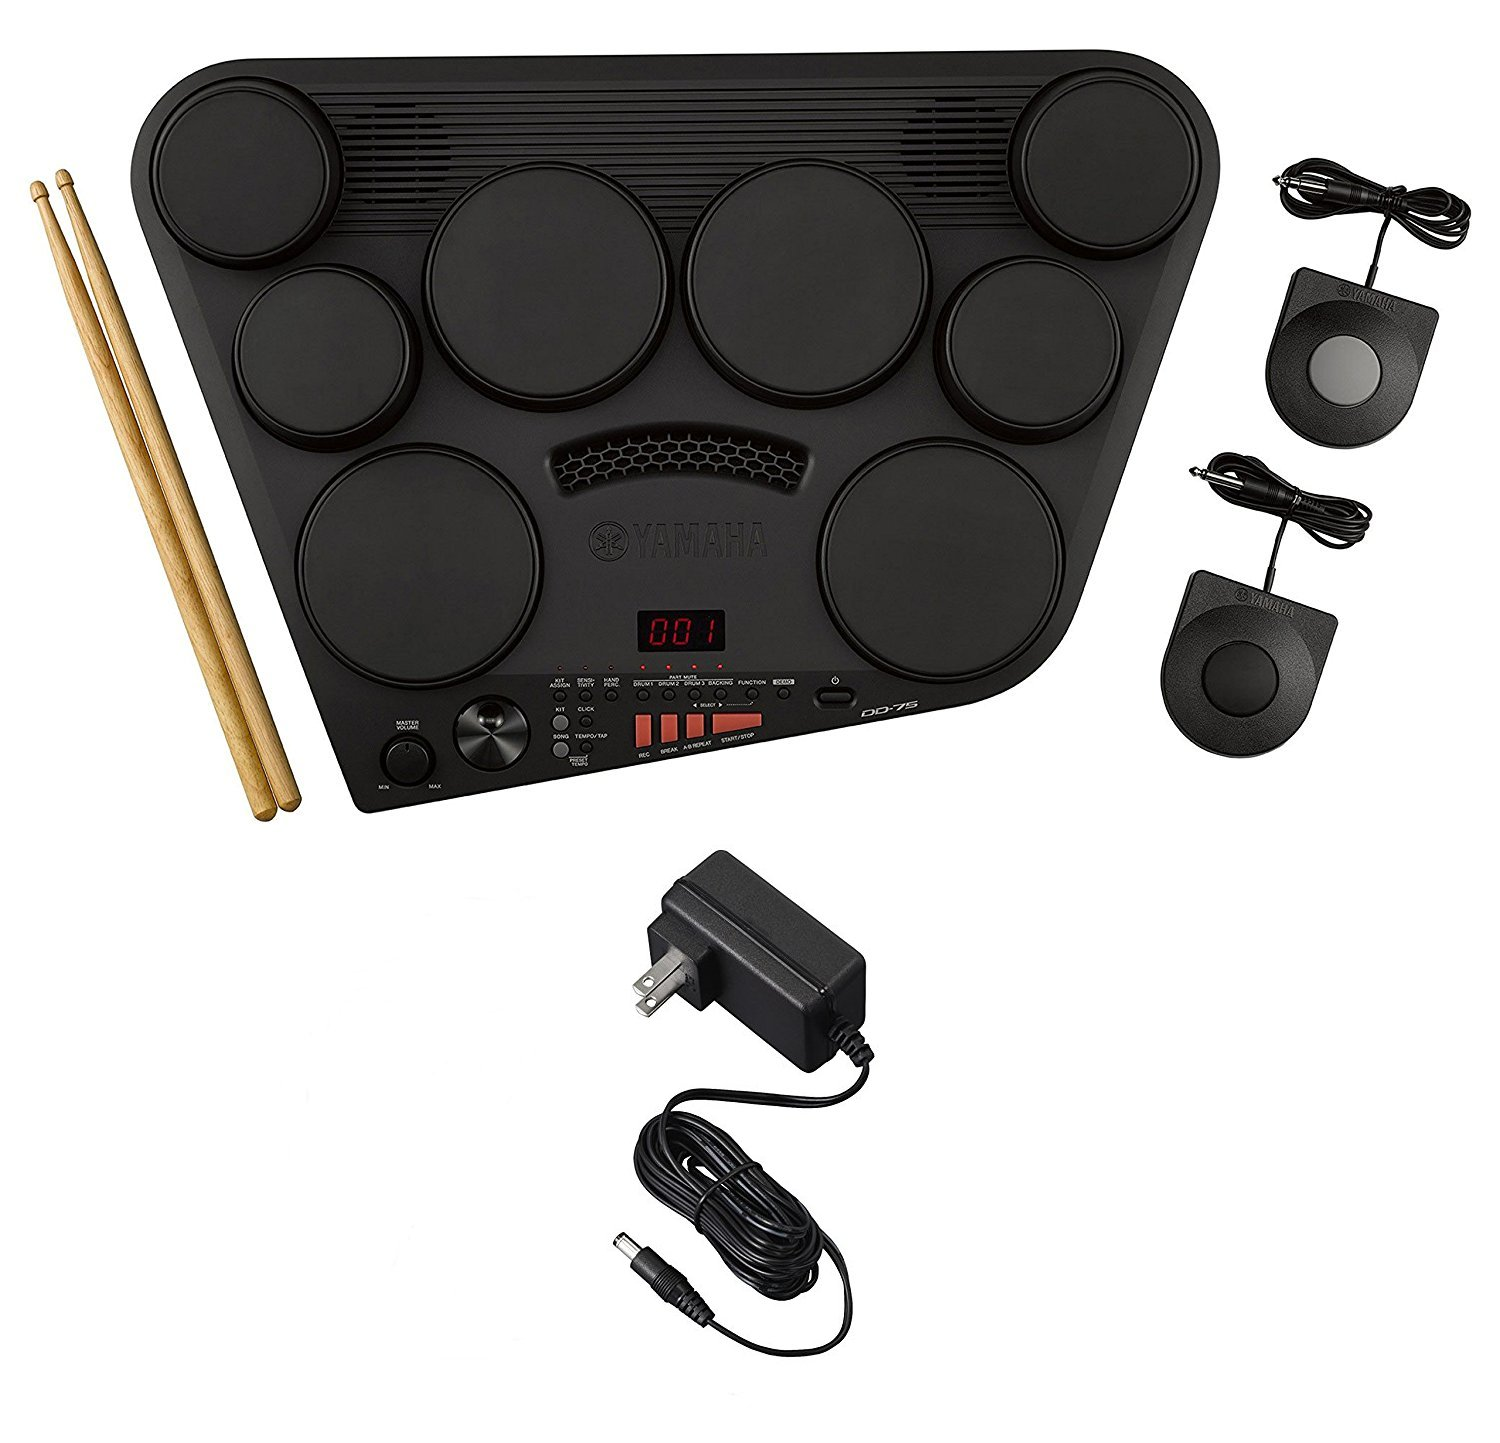 Yamaha DD75AD Portable Digital Drums Package with 2 Pedals, Drumsticks - Power Supply Included by YAMAHA